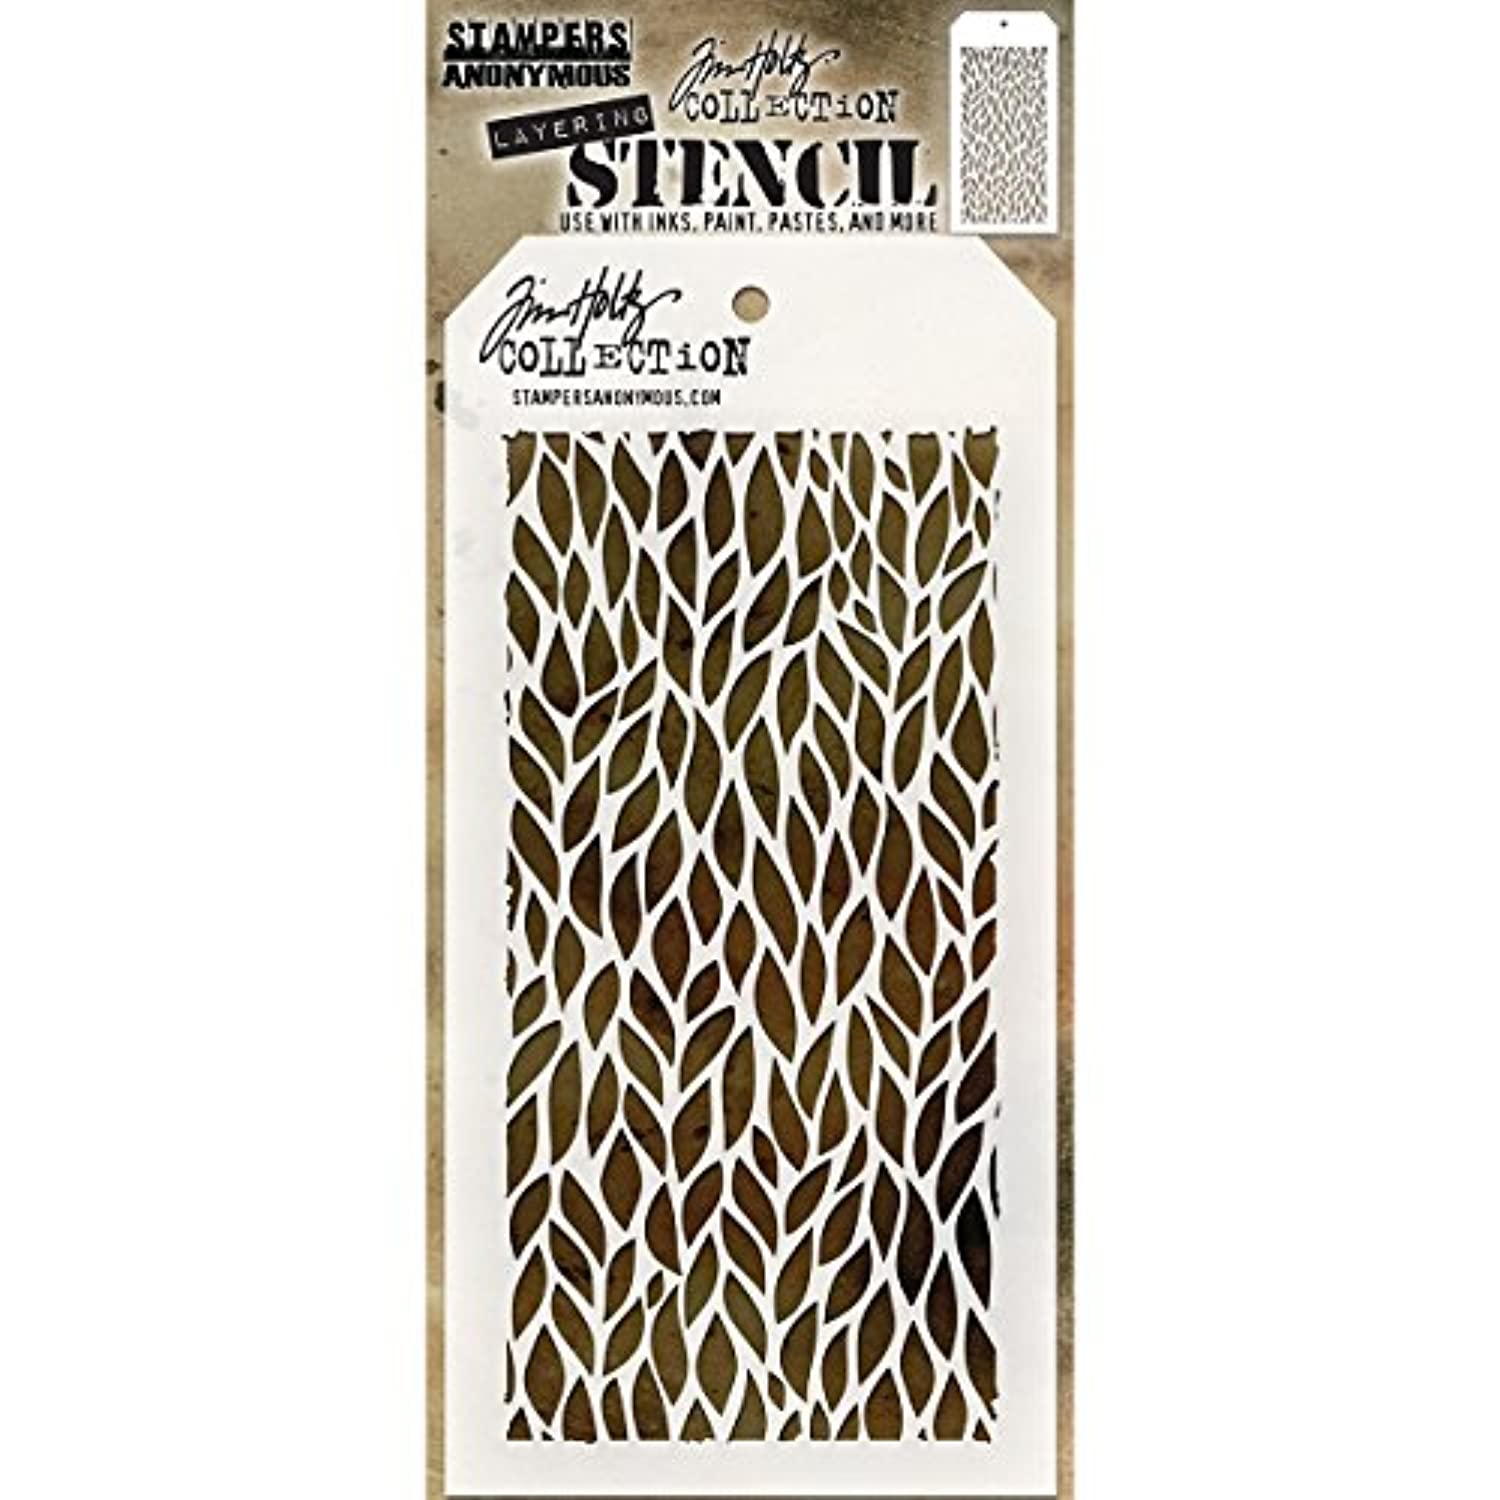 Stampers Anonymous THS078 Tim Holtz Layered Stencil 4.125